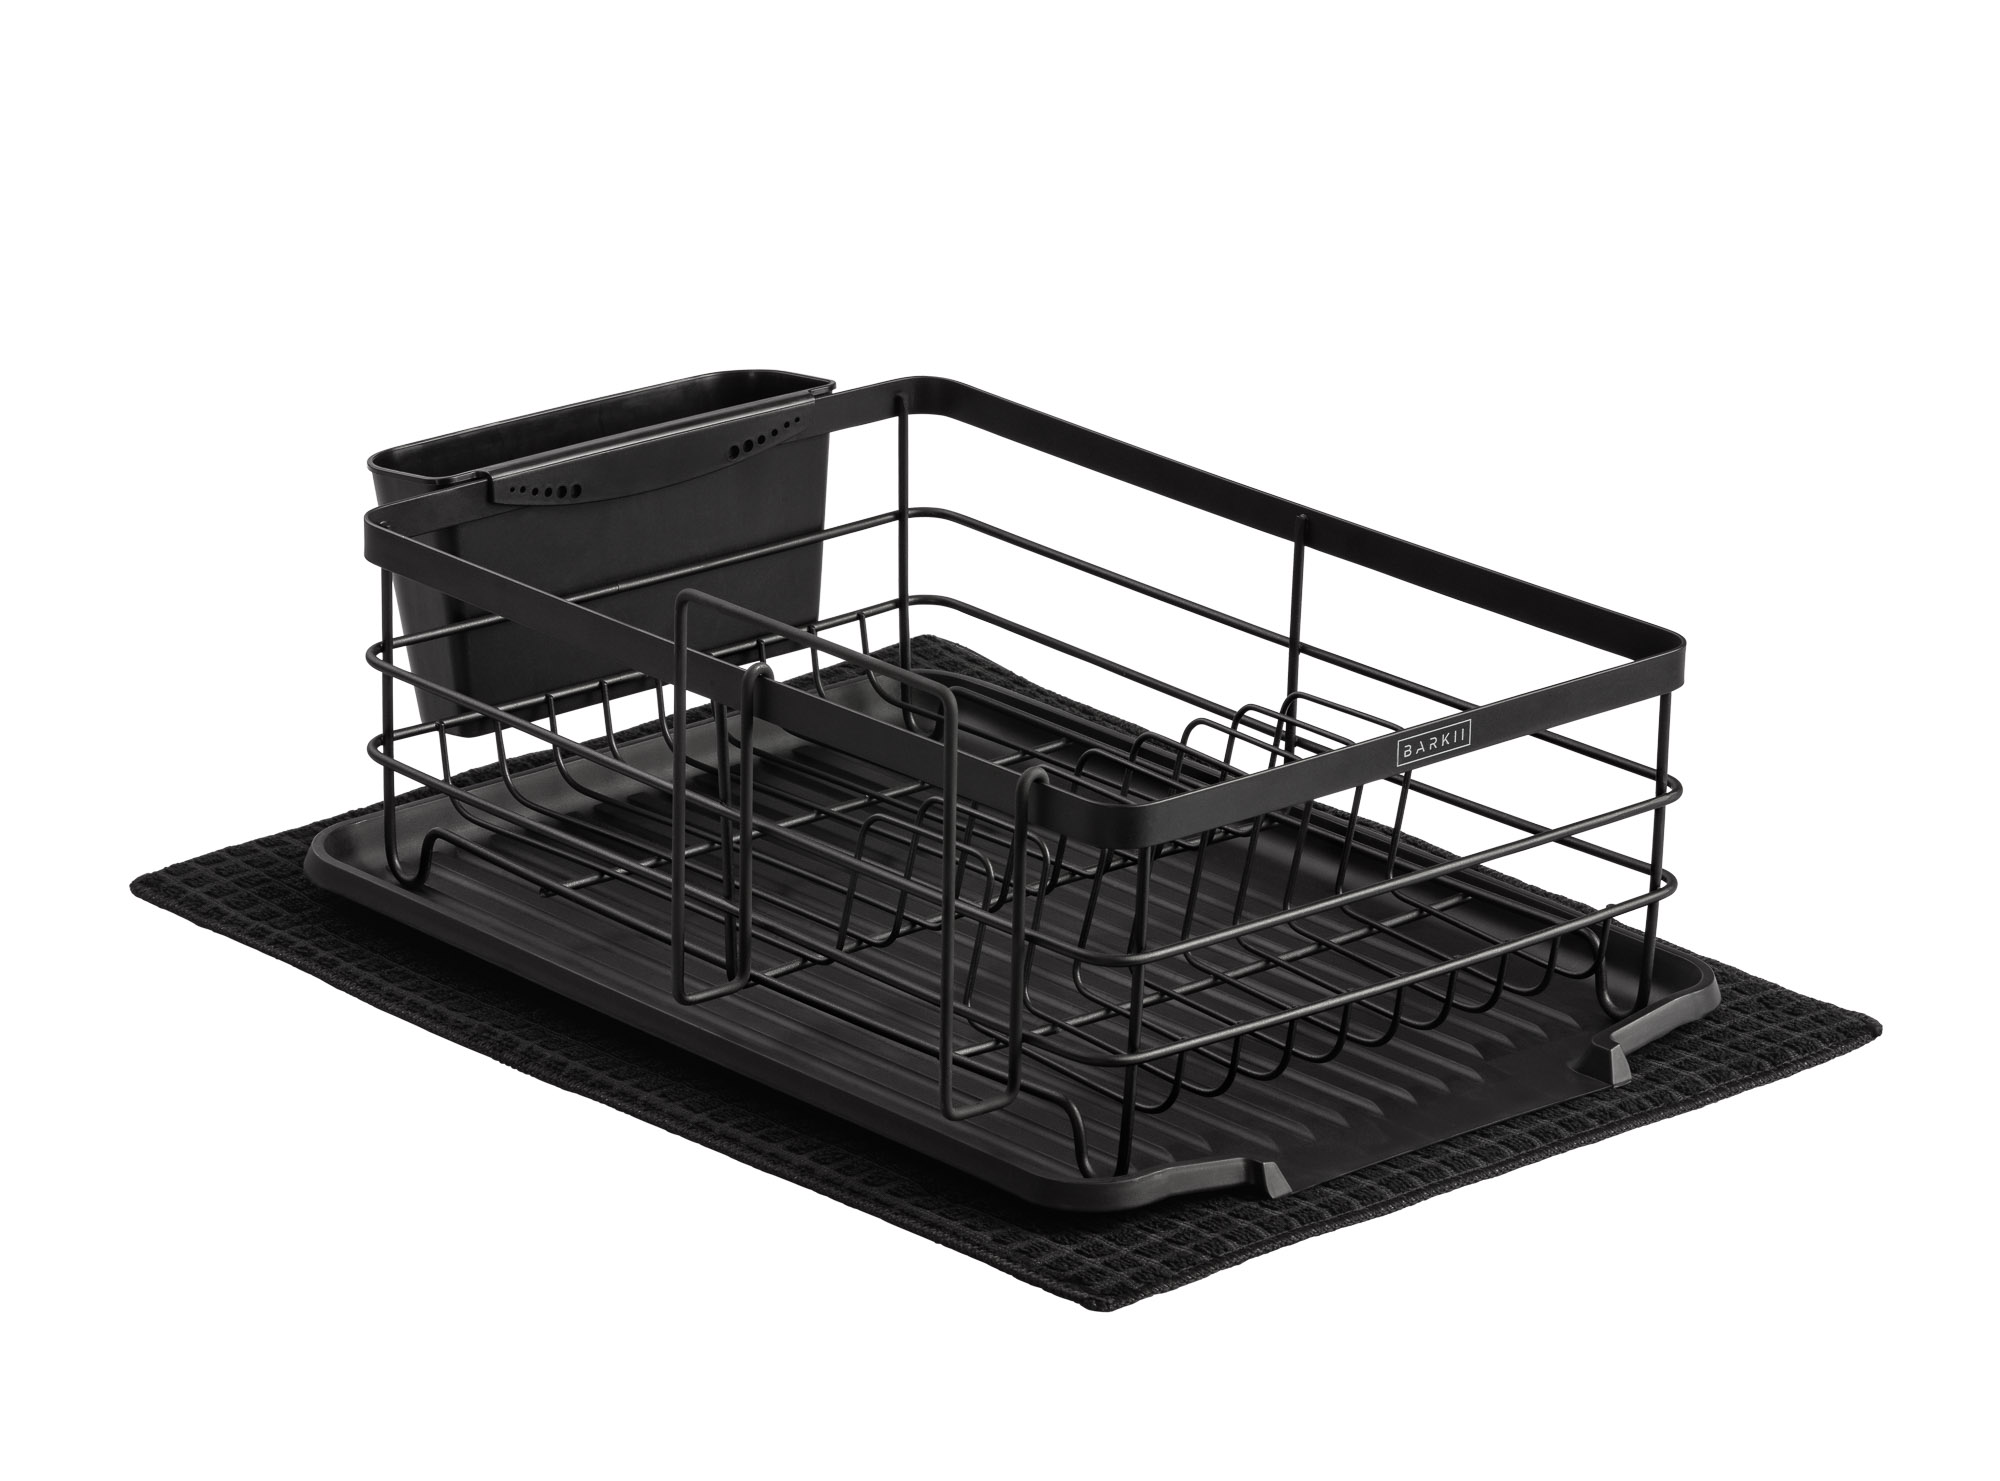 Dish Rack All parts - Less large cutlery container - Product photo for Amazon